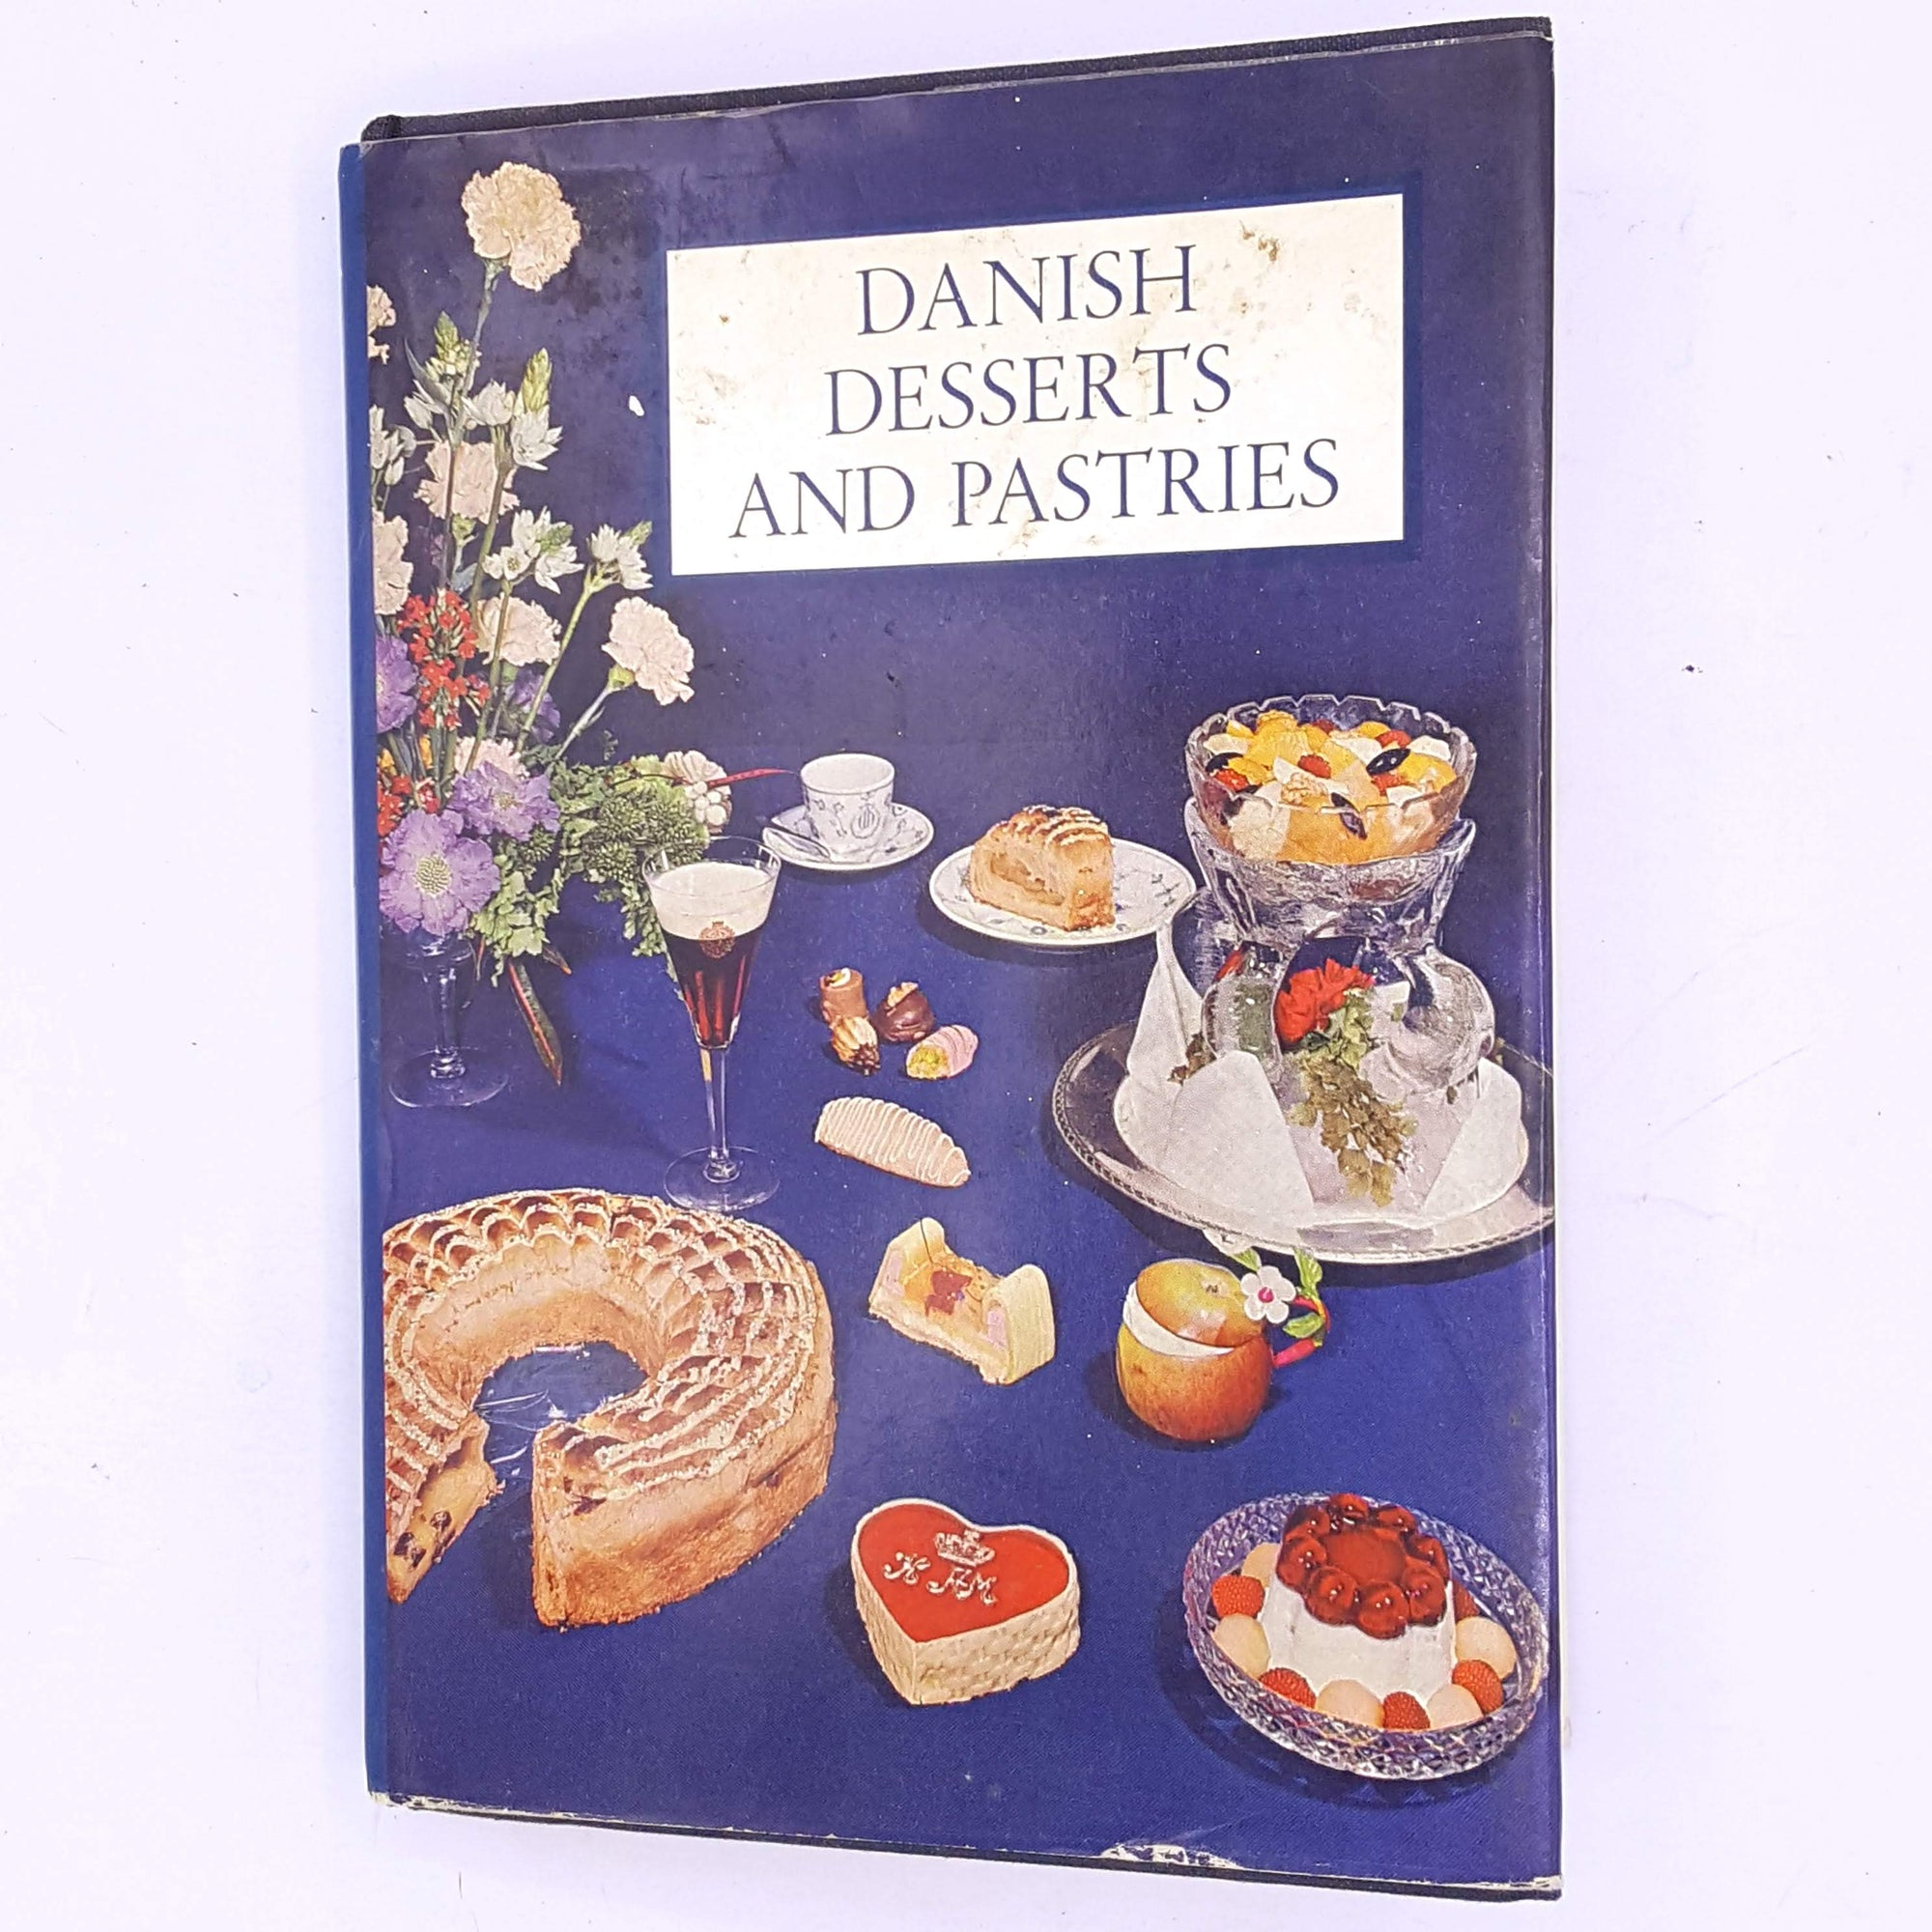 old-antique-decorative-country-house-library-patterned-books-for-foodie-breakfast-lunch-dinner-food-meals-cooking-baking-cook-bake- thrift-cookbook-classic-cookbooks-recipes-vintage-Danish-Desserts-and-Pastries-by-G.L.-Wennberg-